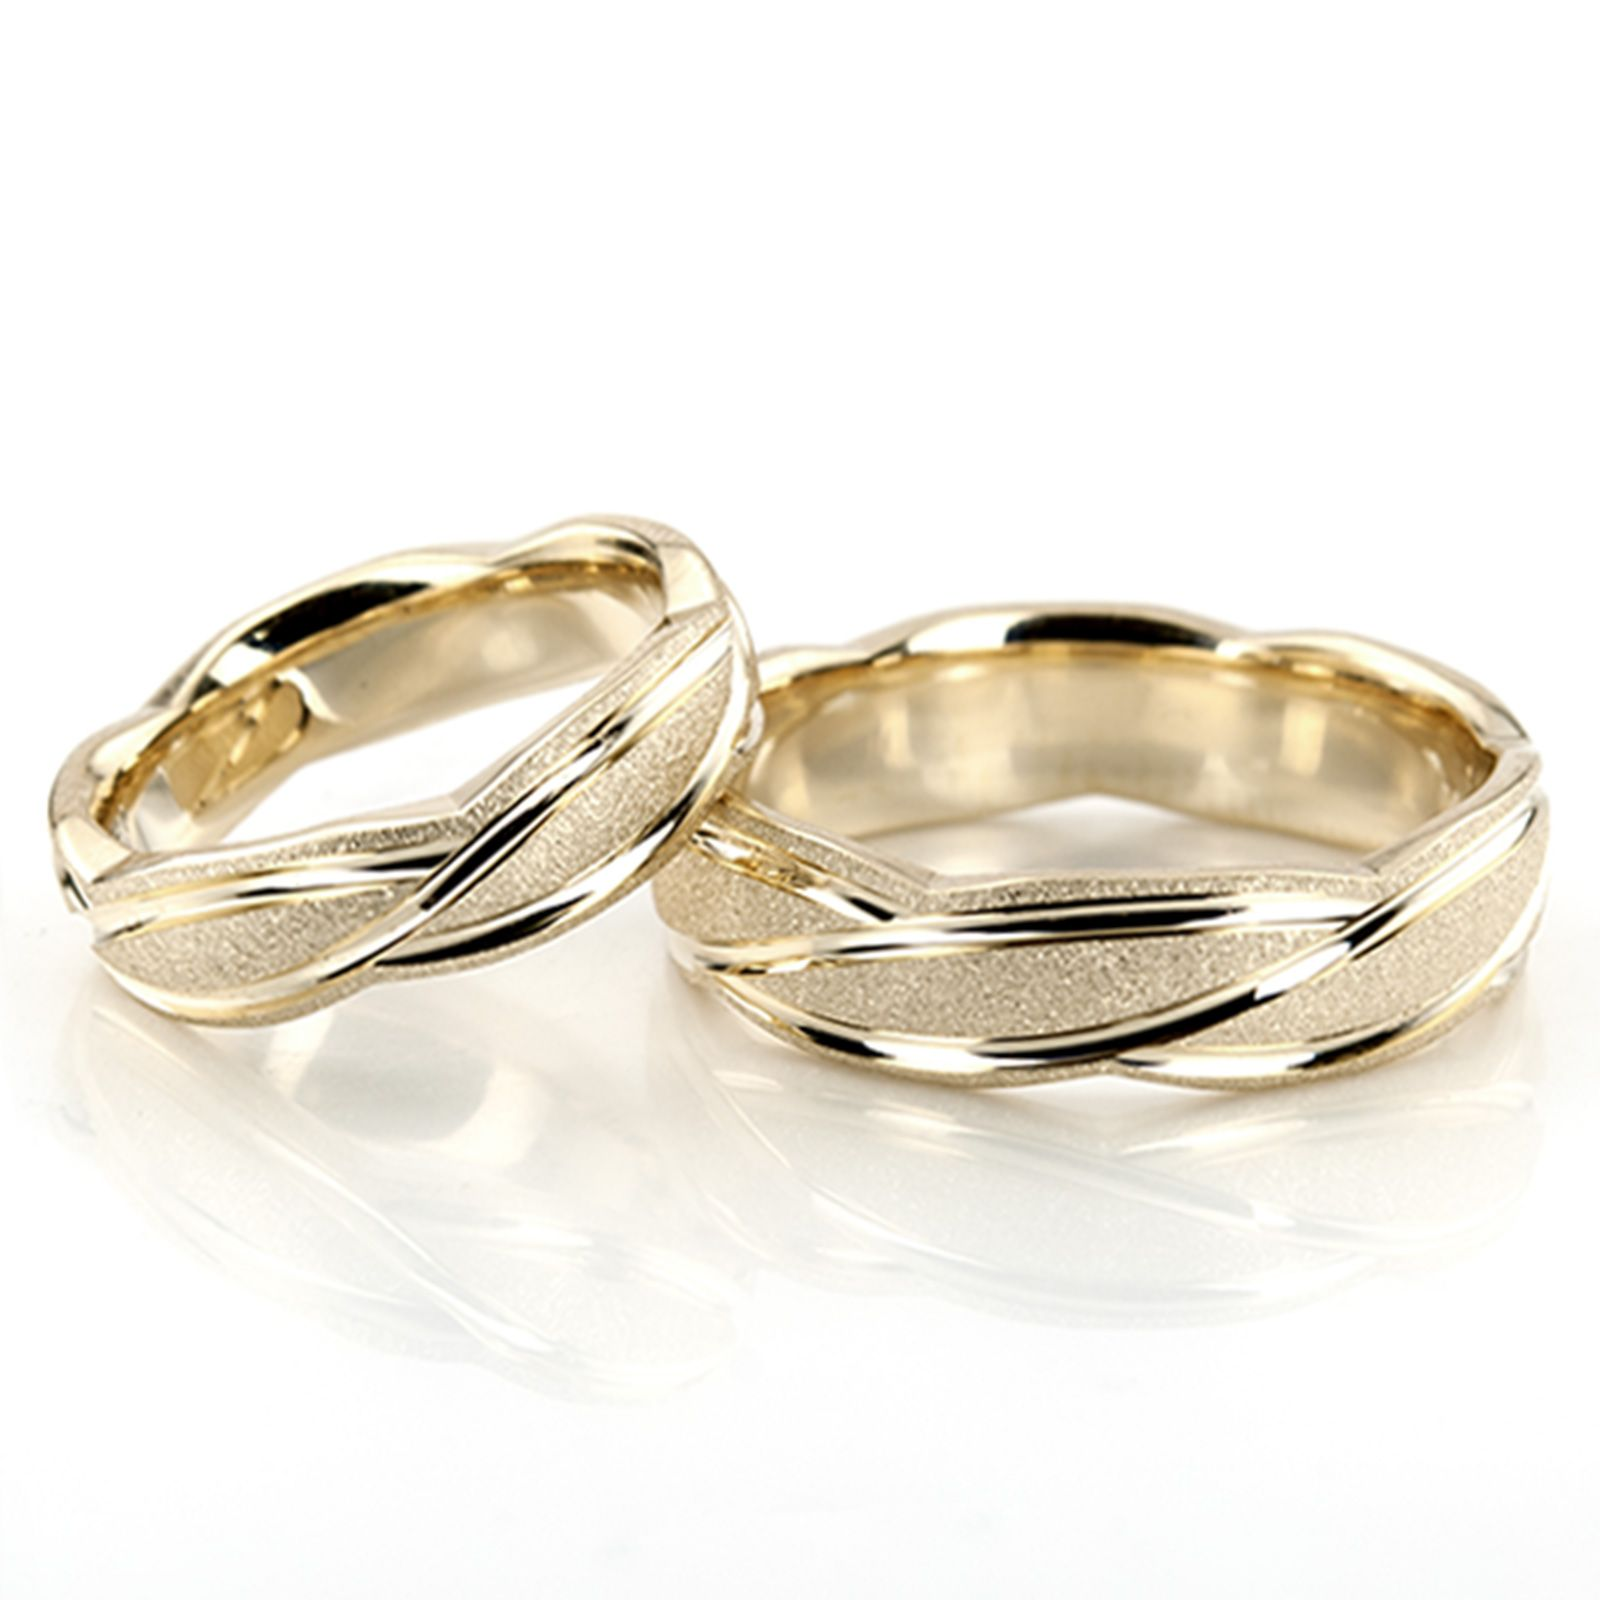 Photo via Wedding rings, Gold wedding rings, Wedding